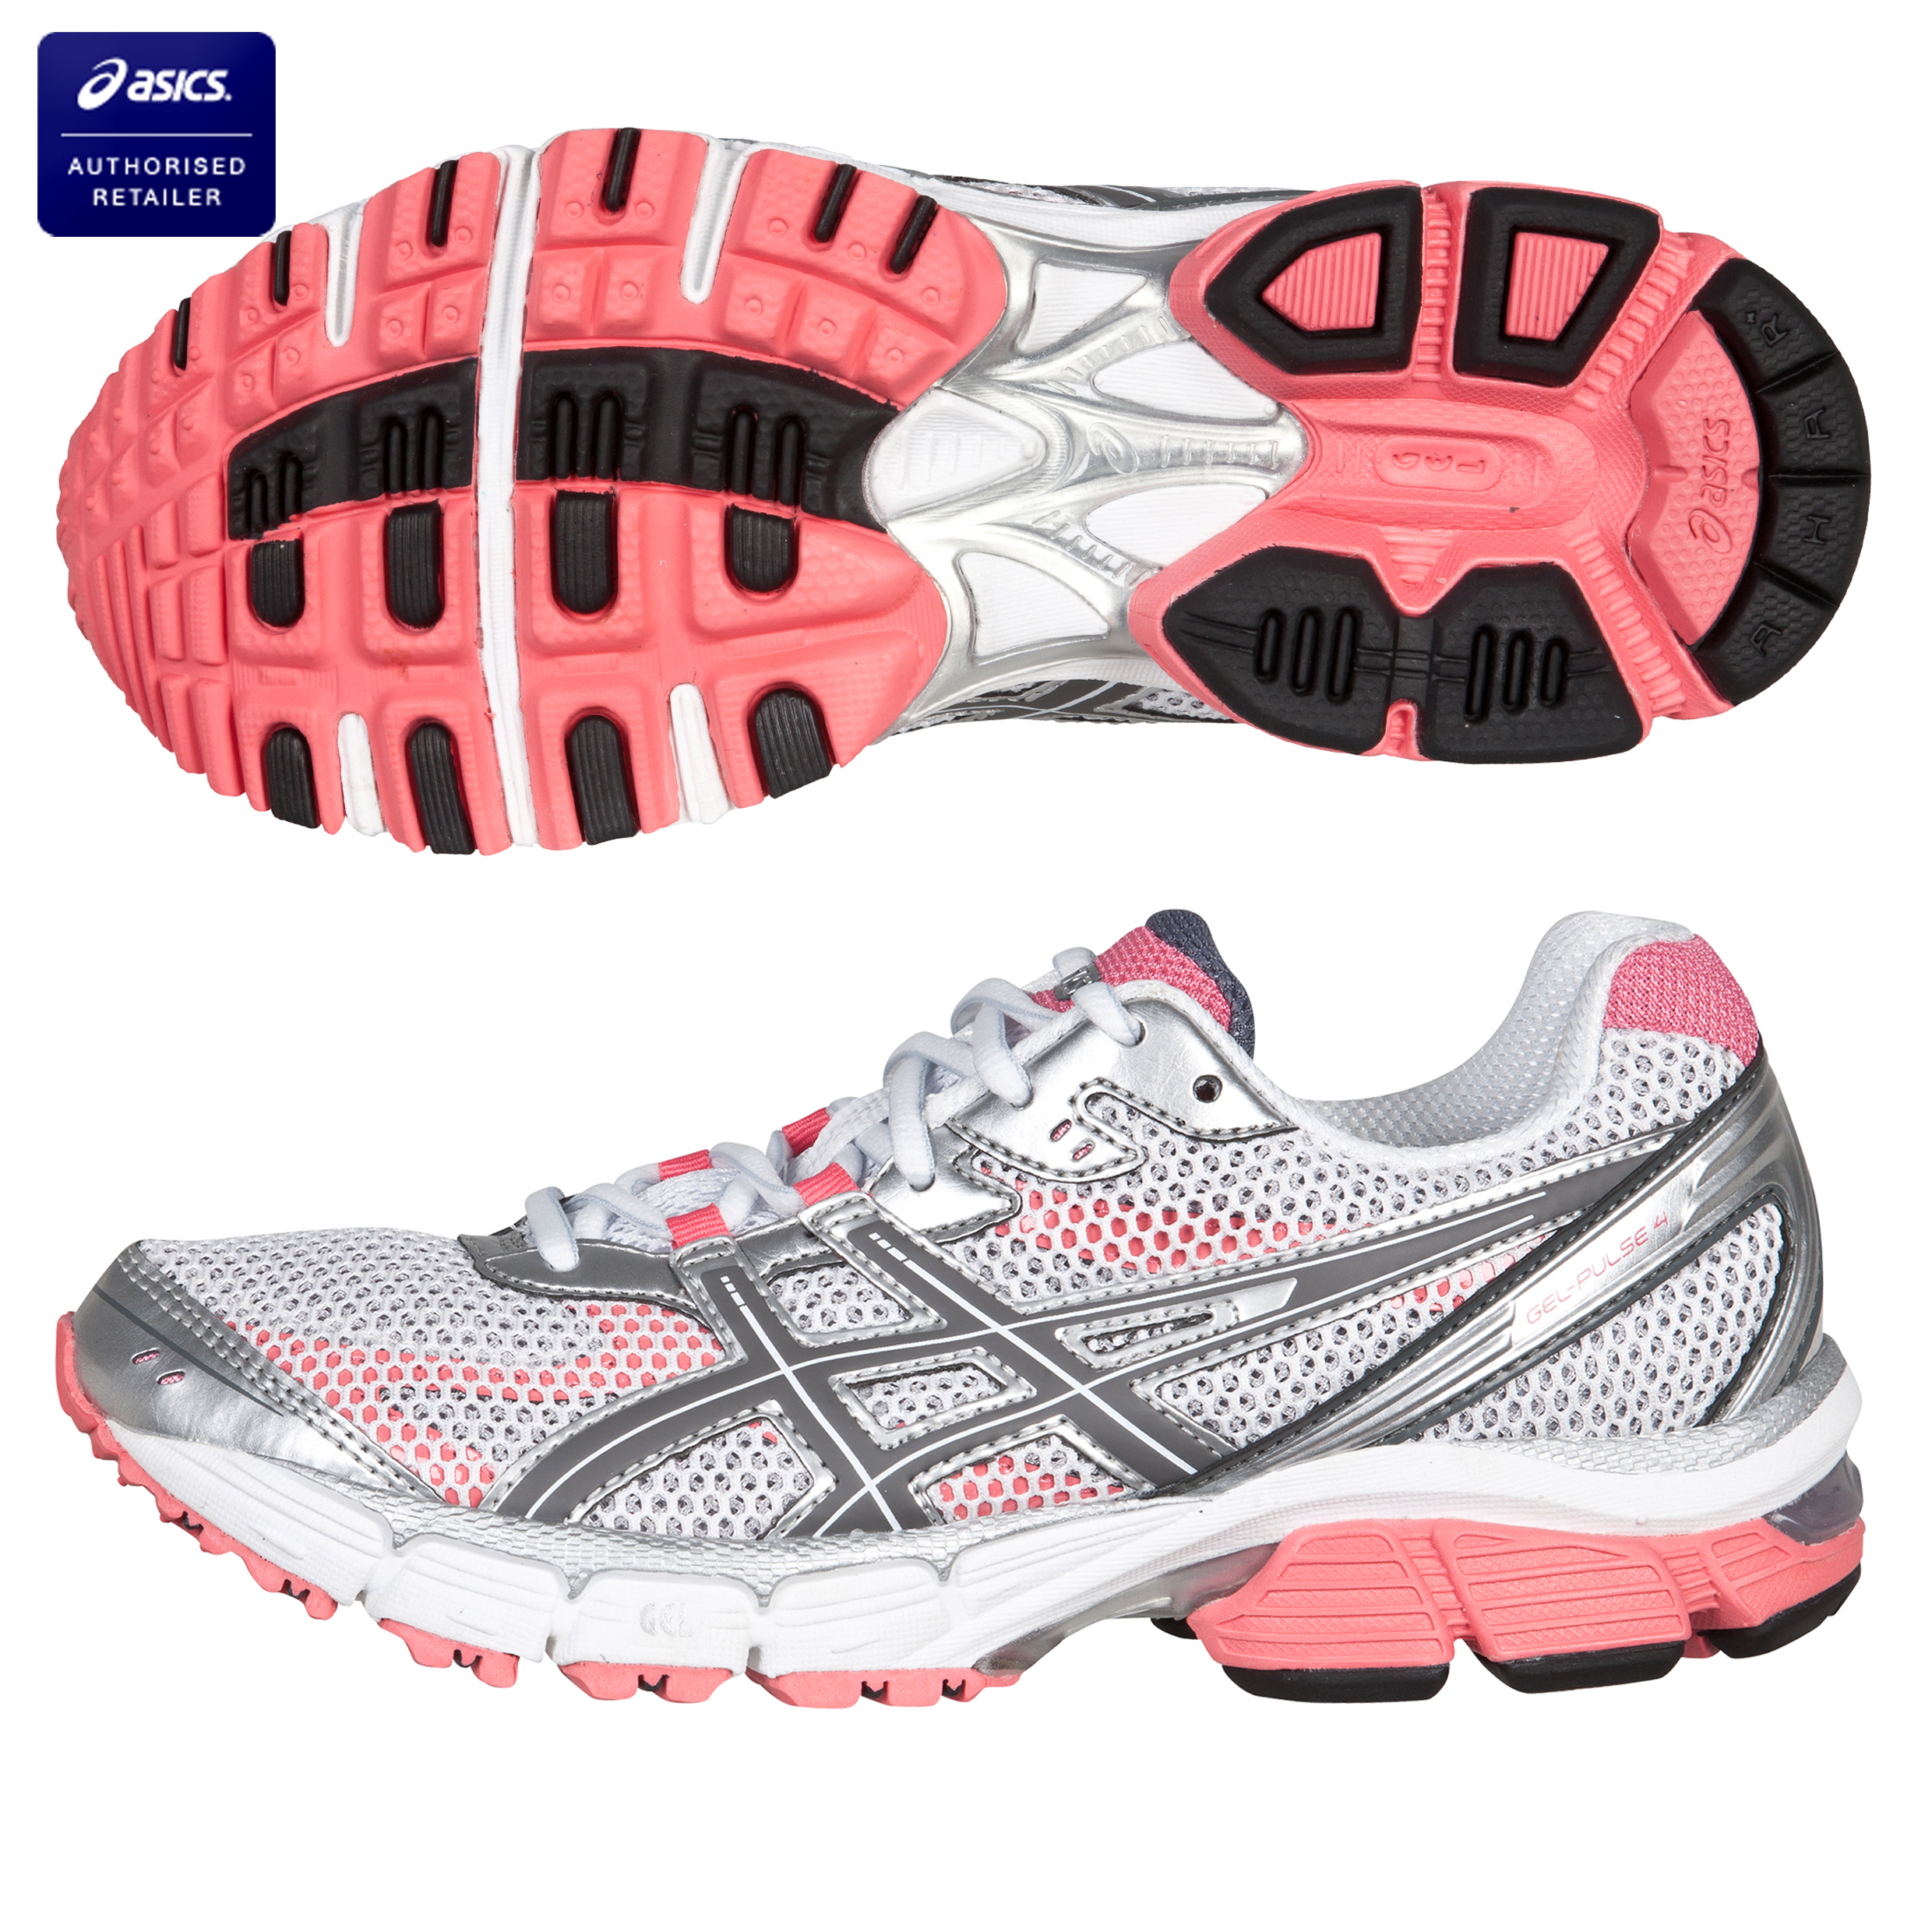 Asics Gel-Pulse 4 Trainer - White/Grey/Rose Pink - Womens